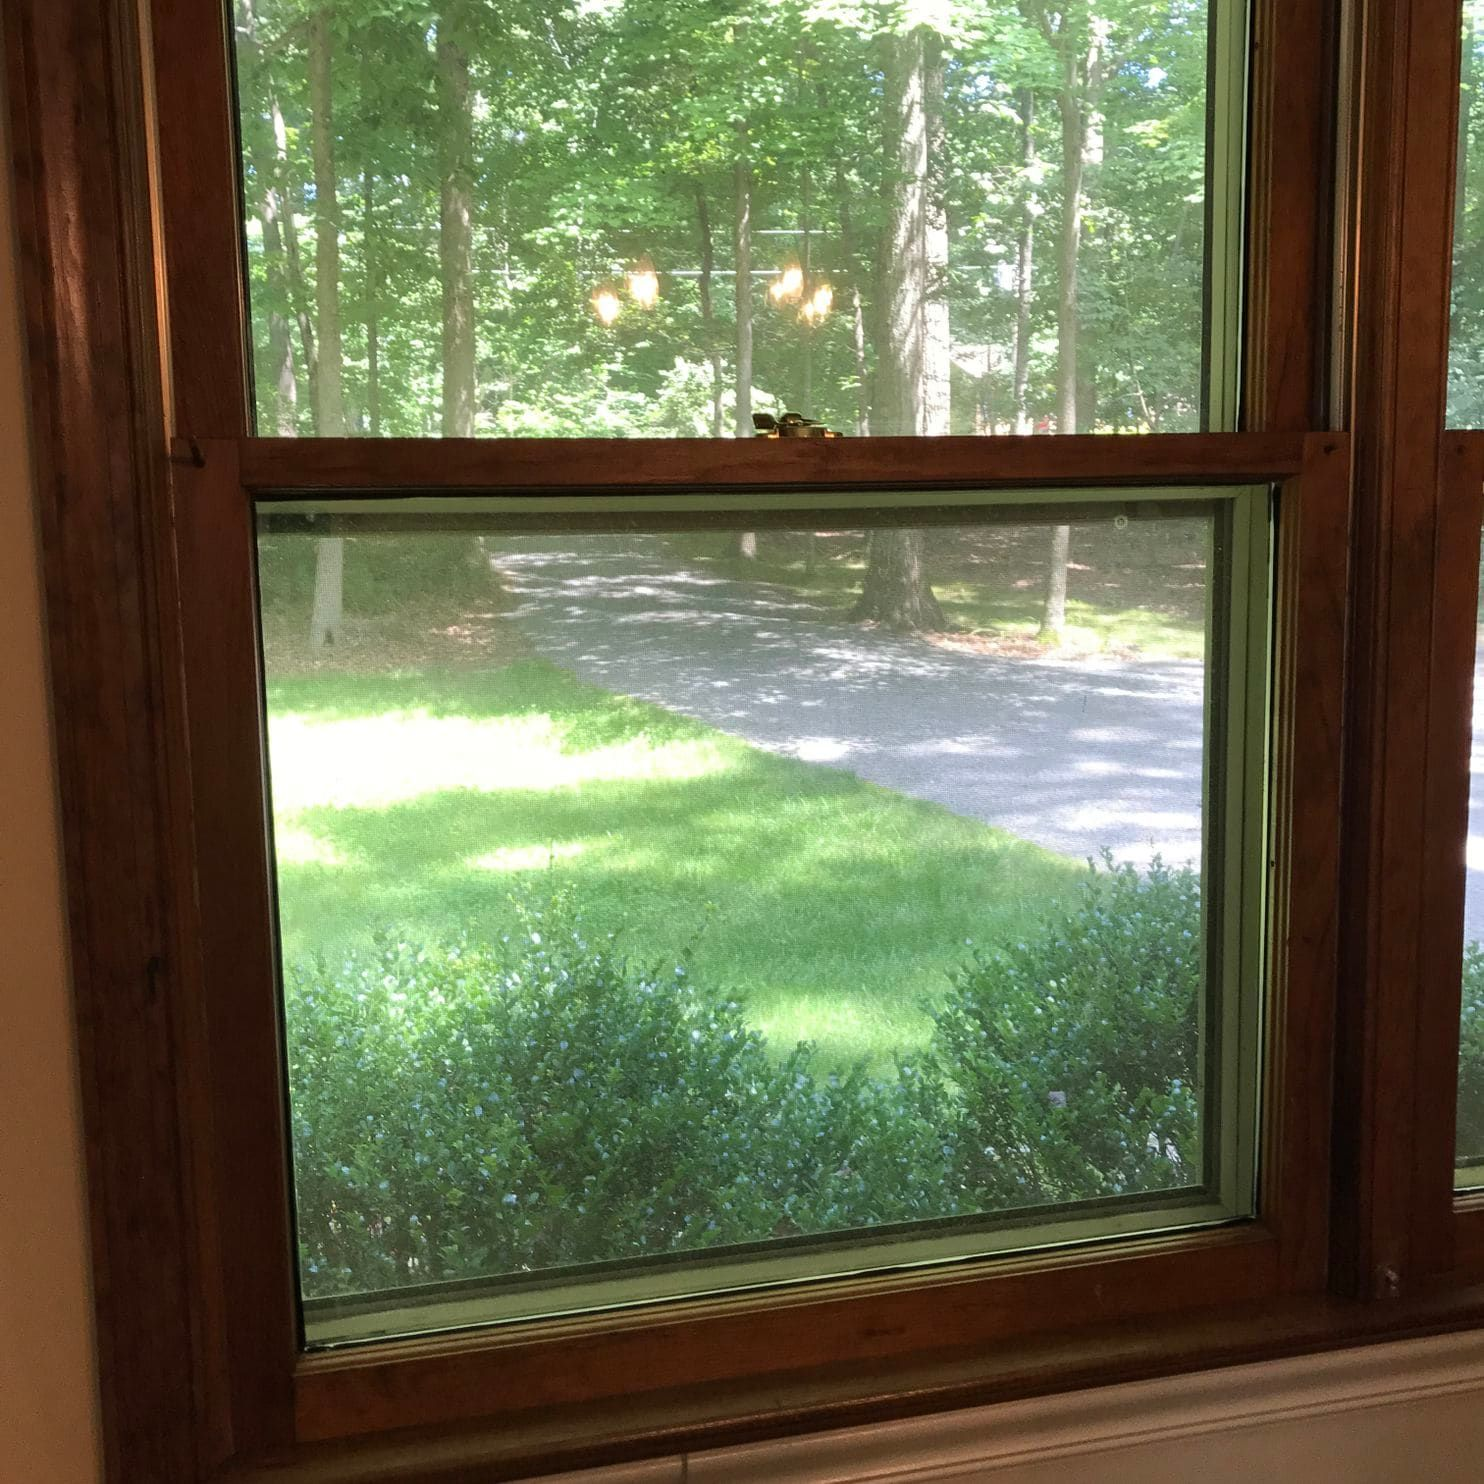 How To Repair Old Wooden Double Hung Windows Double Hung Windows Wooden Blinds Double Hung